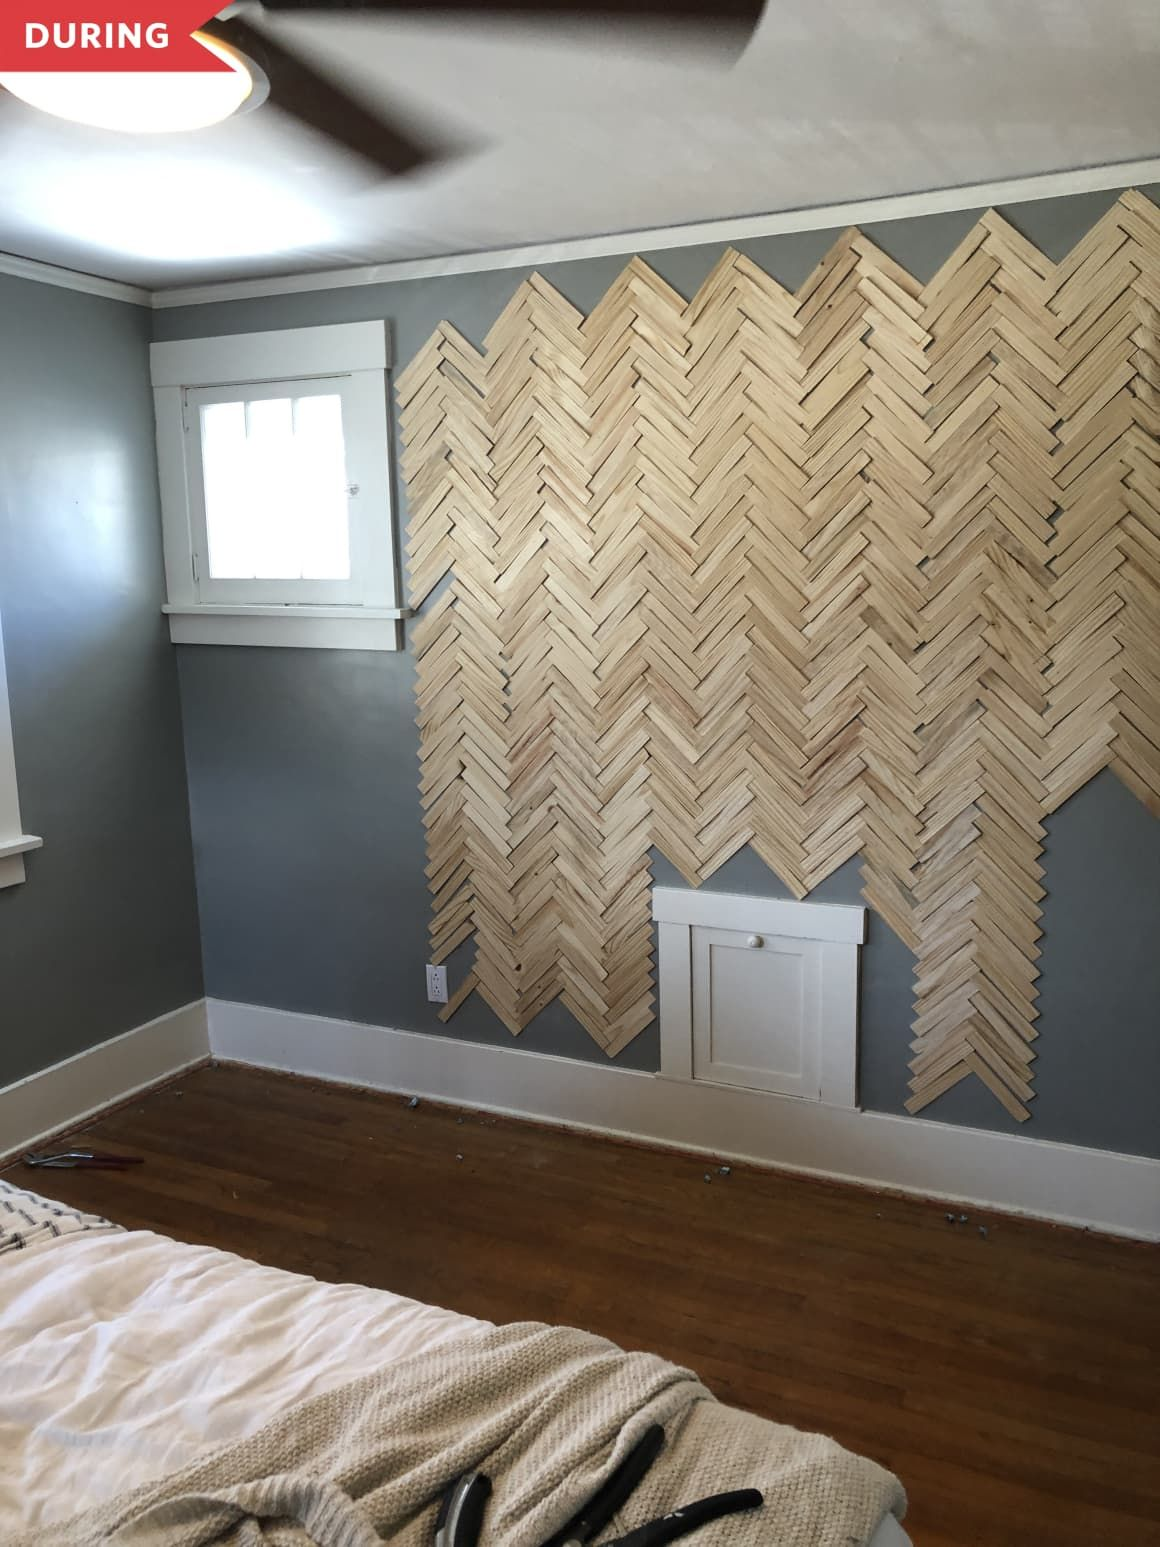 Before And After This 100 Bedroom Accent Wall Uses An Unexpected Building Material In 2020 Accent Wall Bedroom Gray Accent Wall Bedroom Bedroom Accent